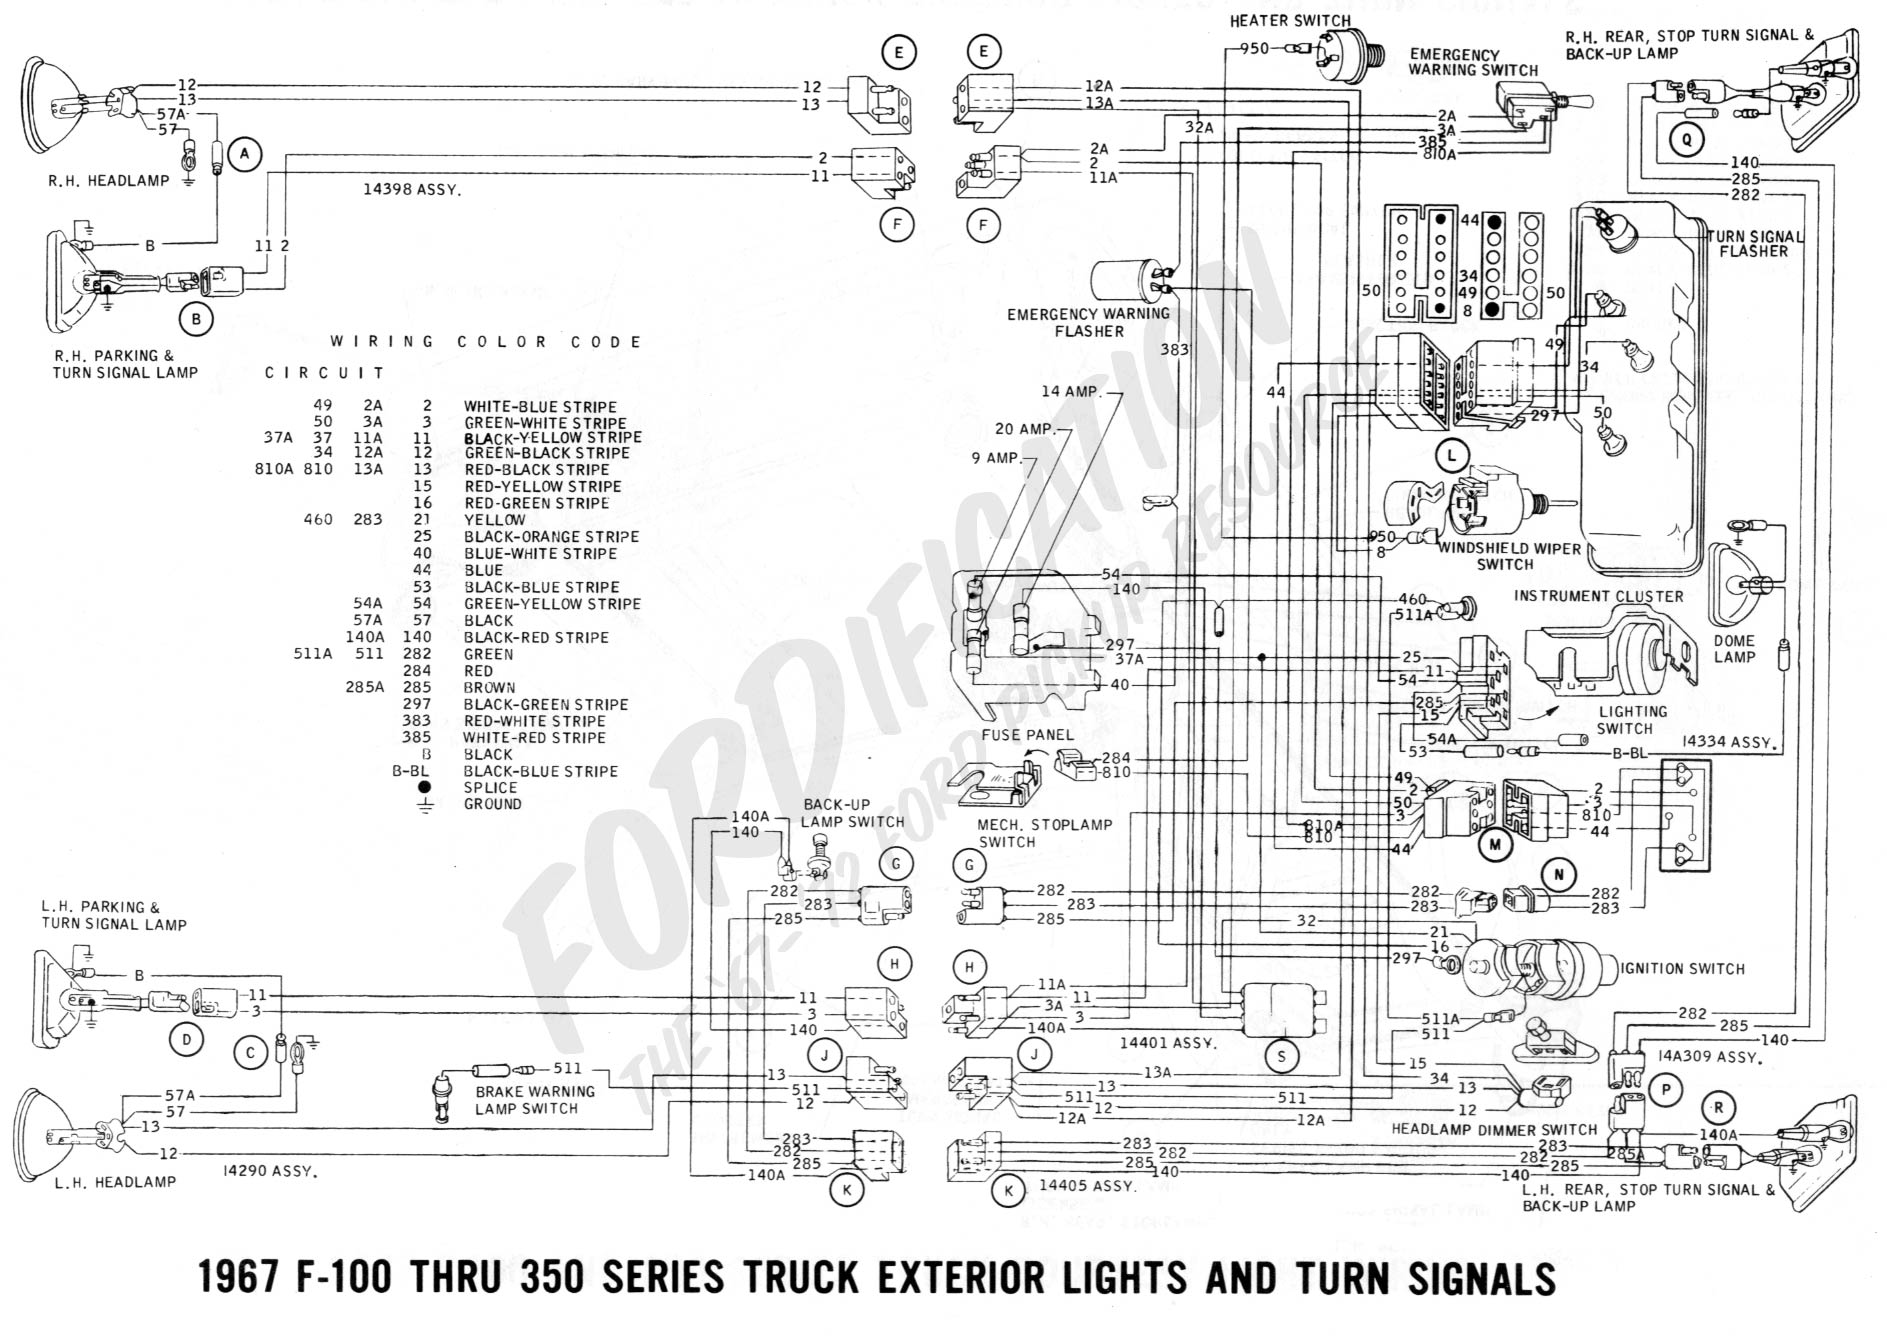 67 Buick Wiring Diagram Libraries 1967 Dodge Coronet Neutral Safety Switch Fuse Box F100 Ford Simple Diagram67 Online